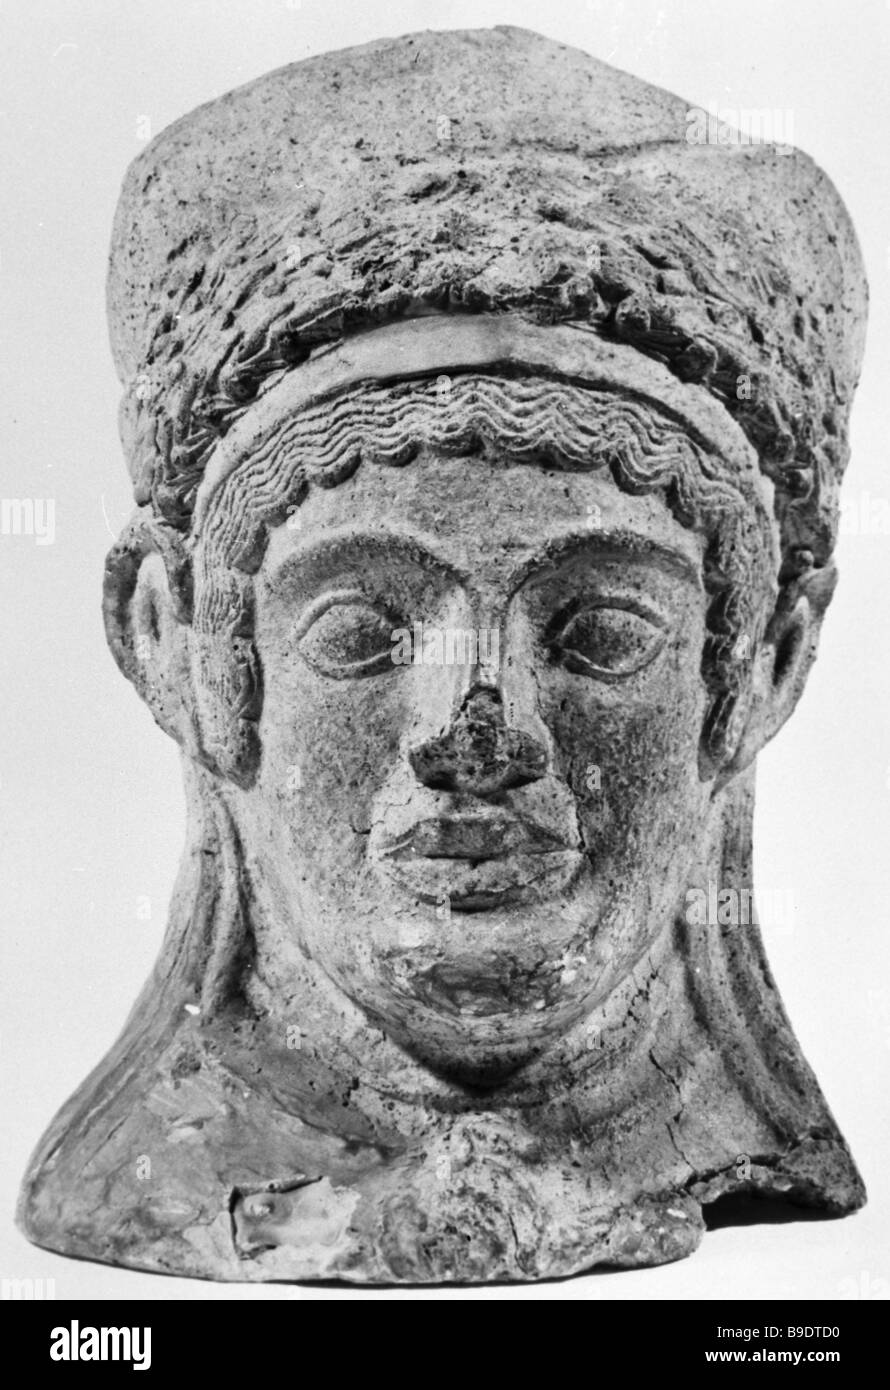 Clay votive object in the shape of a woman s head 5th century BC from the collection of the State Hermitage Museum - Stock Image